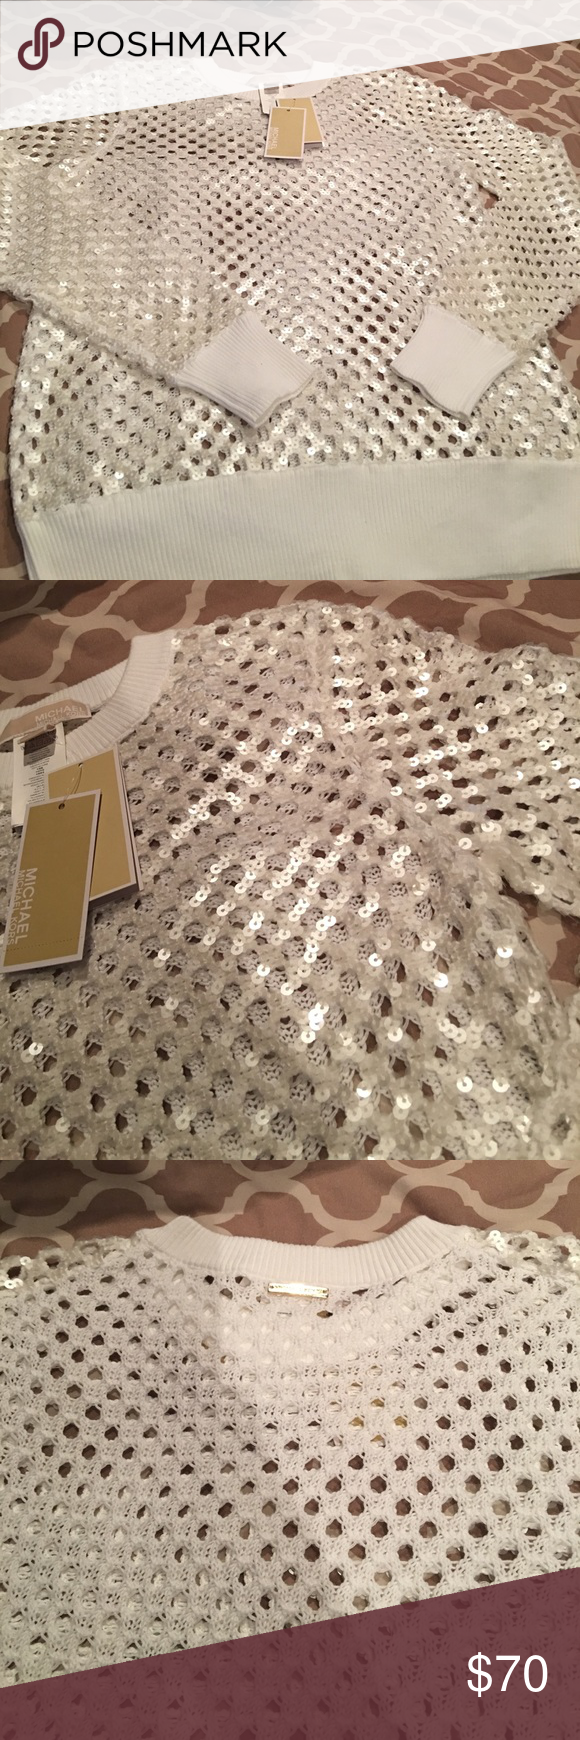 😍Michael Kors shirt!😍 White Michael Kors sweater/shirt .... BRAND NEW!!! Beautiful sequin detail on the sleeves and front .... entire shirt is see thru!! Michael Kors Sweaters Crew & Scoop Necks